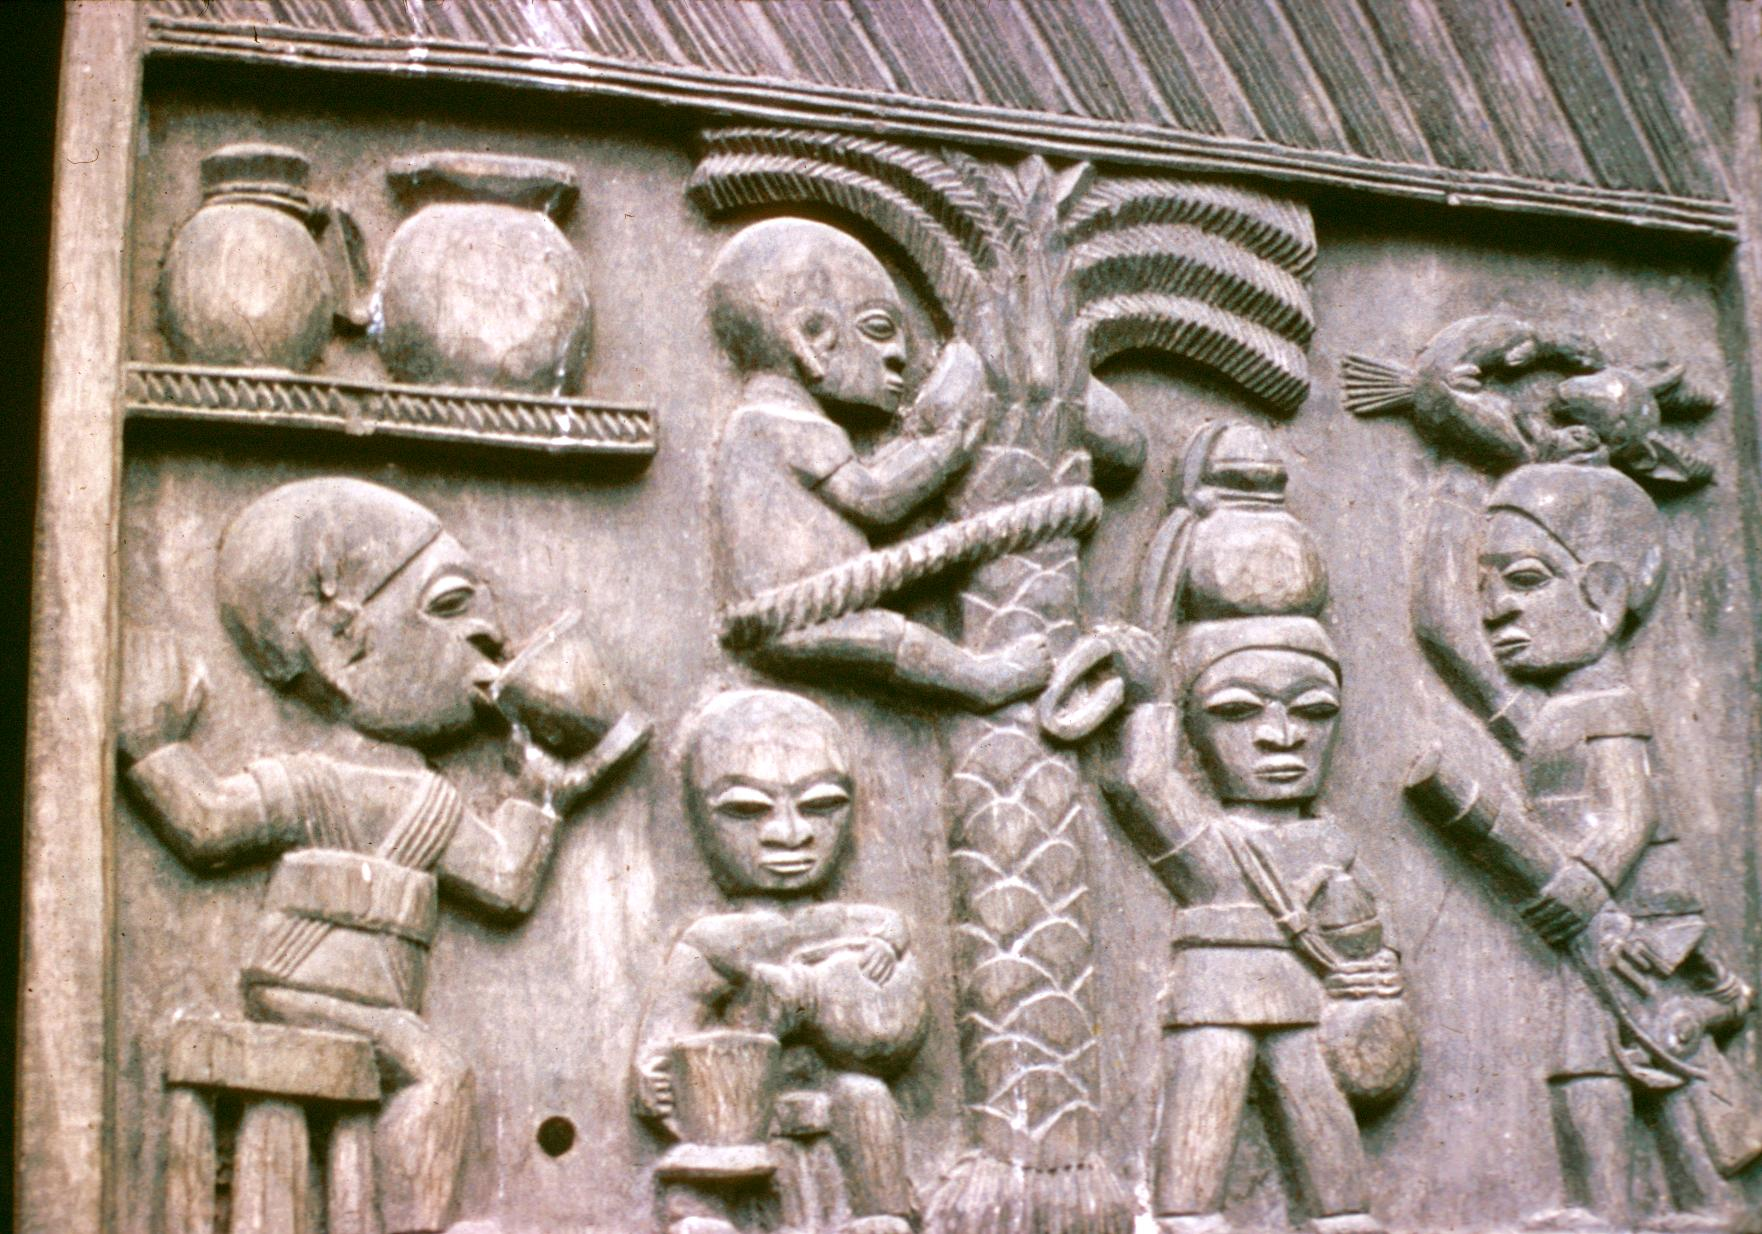 Yoruba Wood Carving Depicting Activities Including Harvest of Coconuts